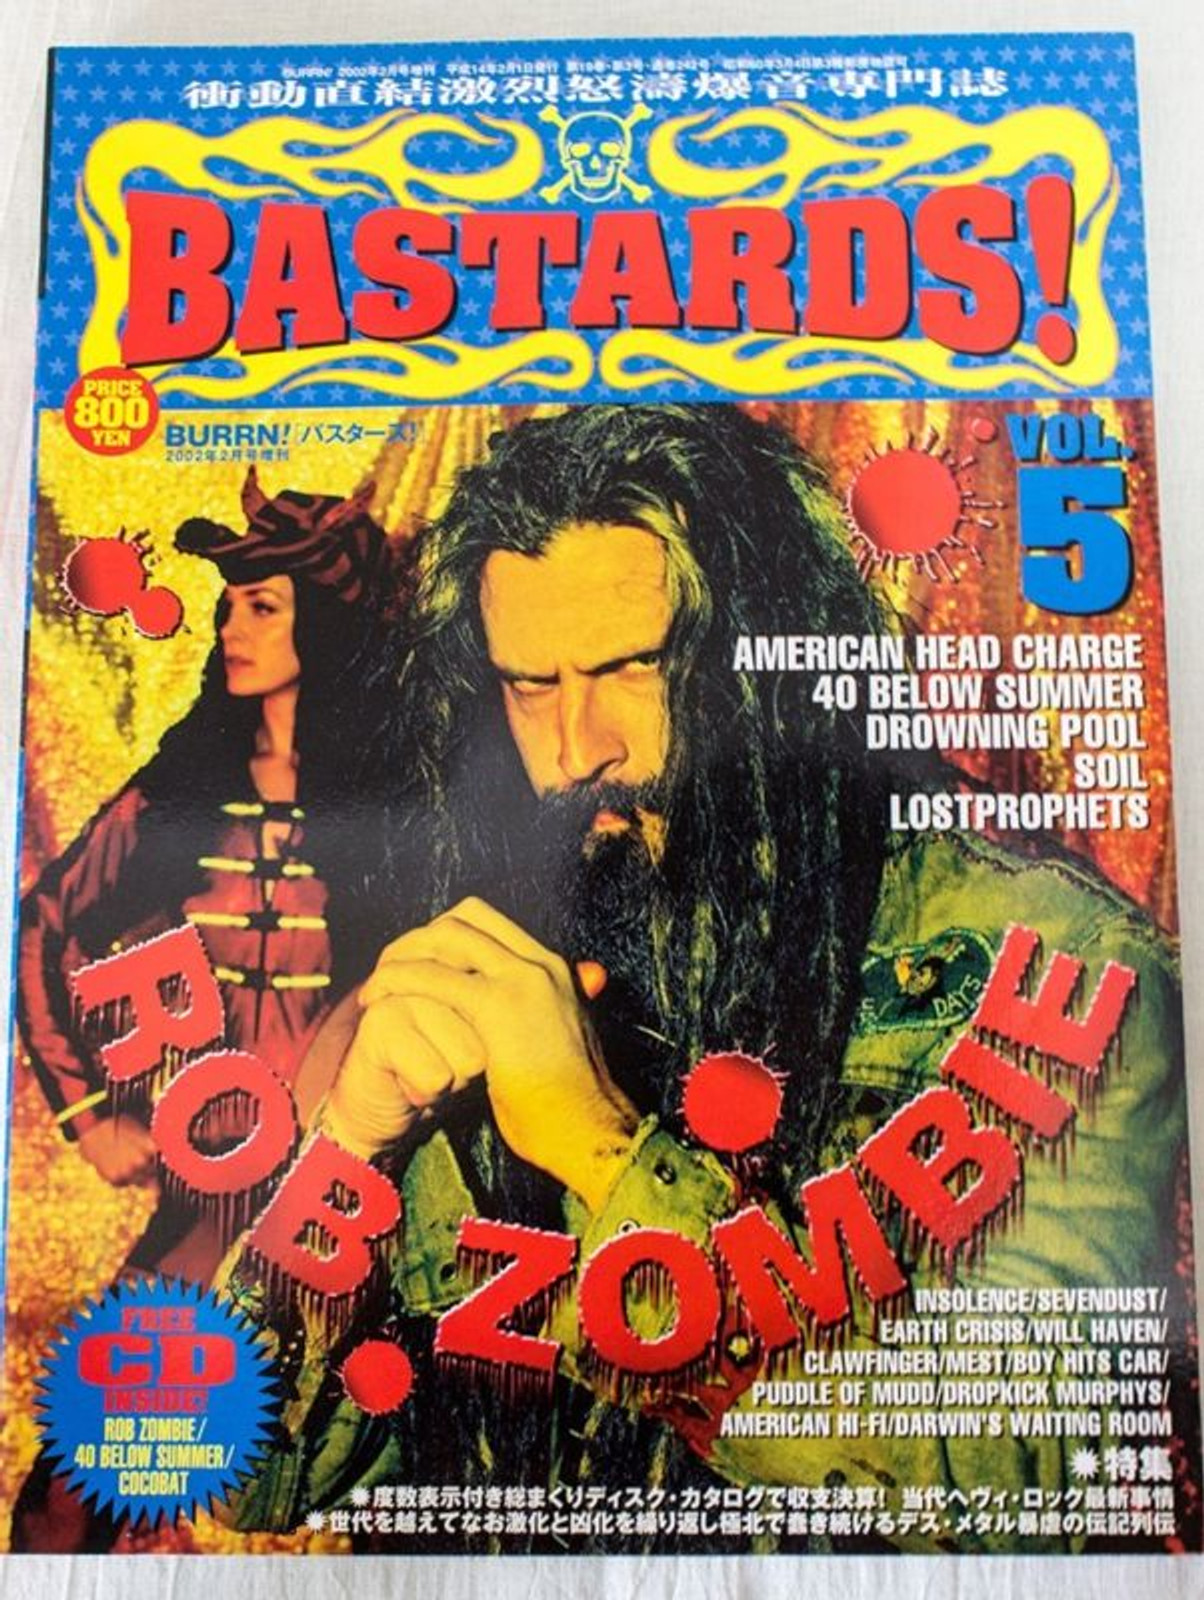 2002 Vol.5 BASTARDS! BURRN! Japan Magazine ROB ZOMBIE/LOSTPROPHETS/SOIL/WHITE